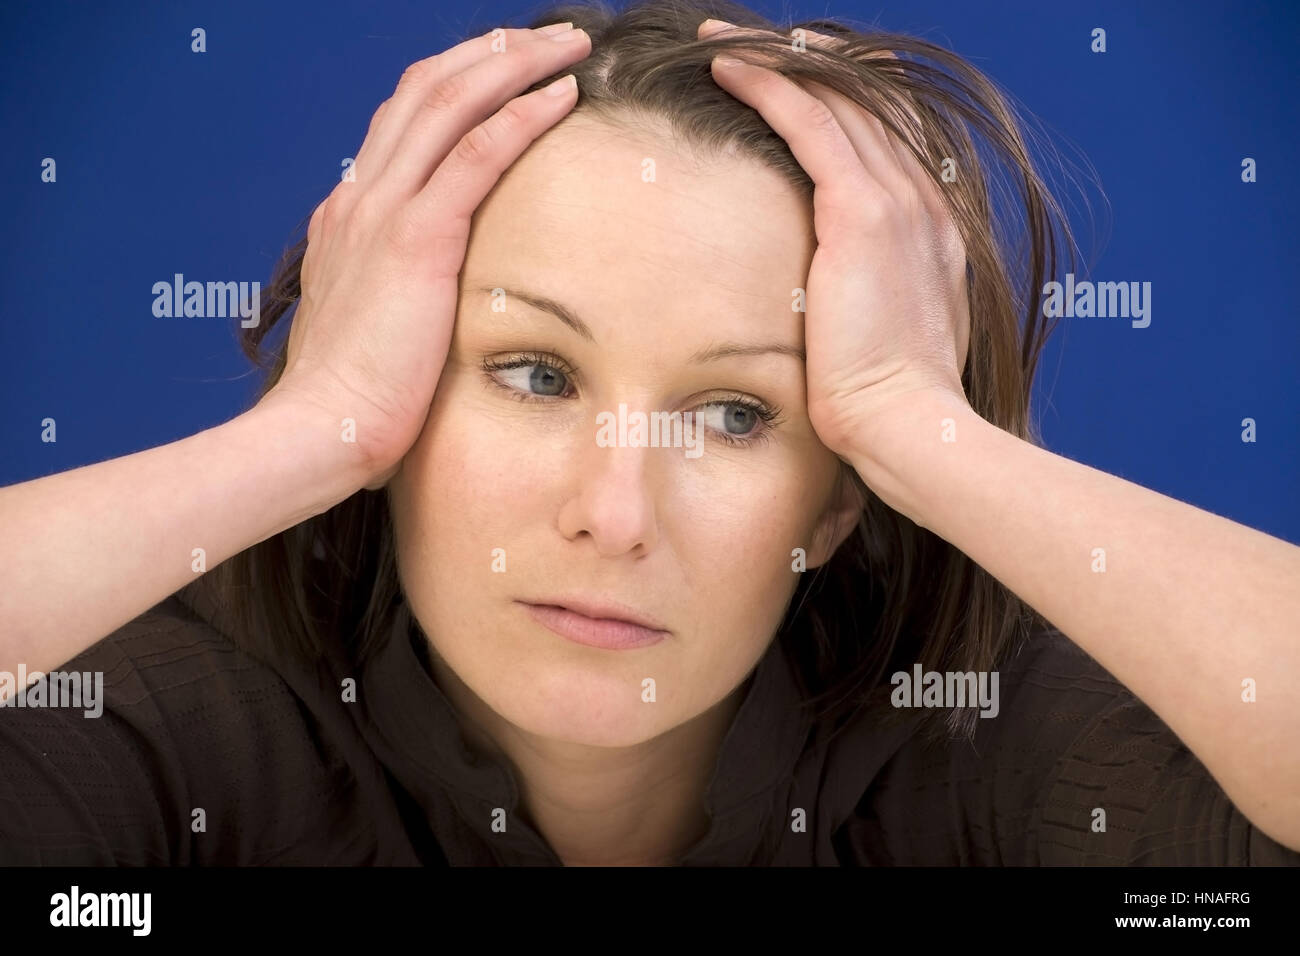 Frustrierte, junge Frau - frustrated, young woman Stock Photo